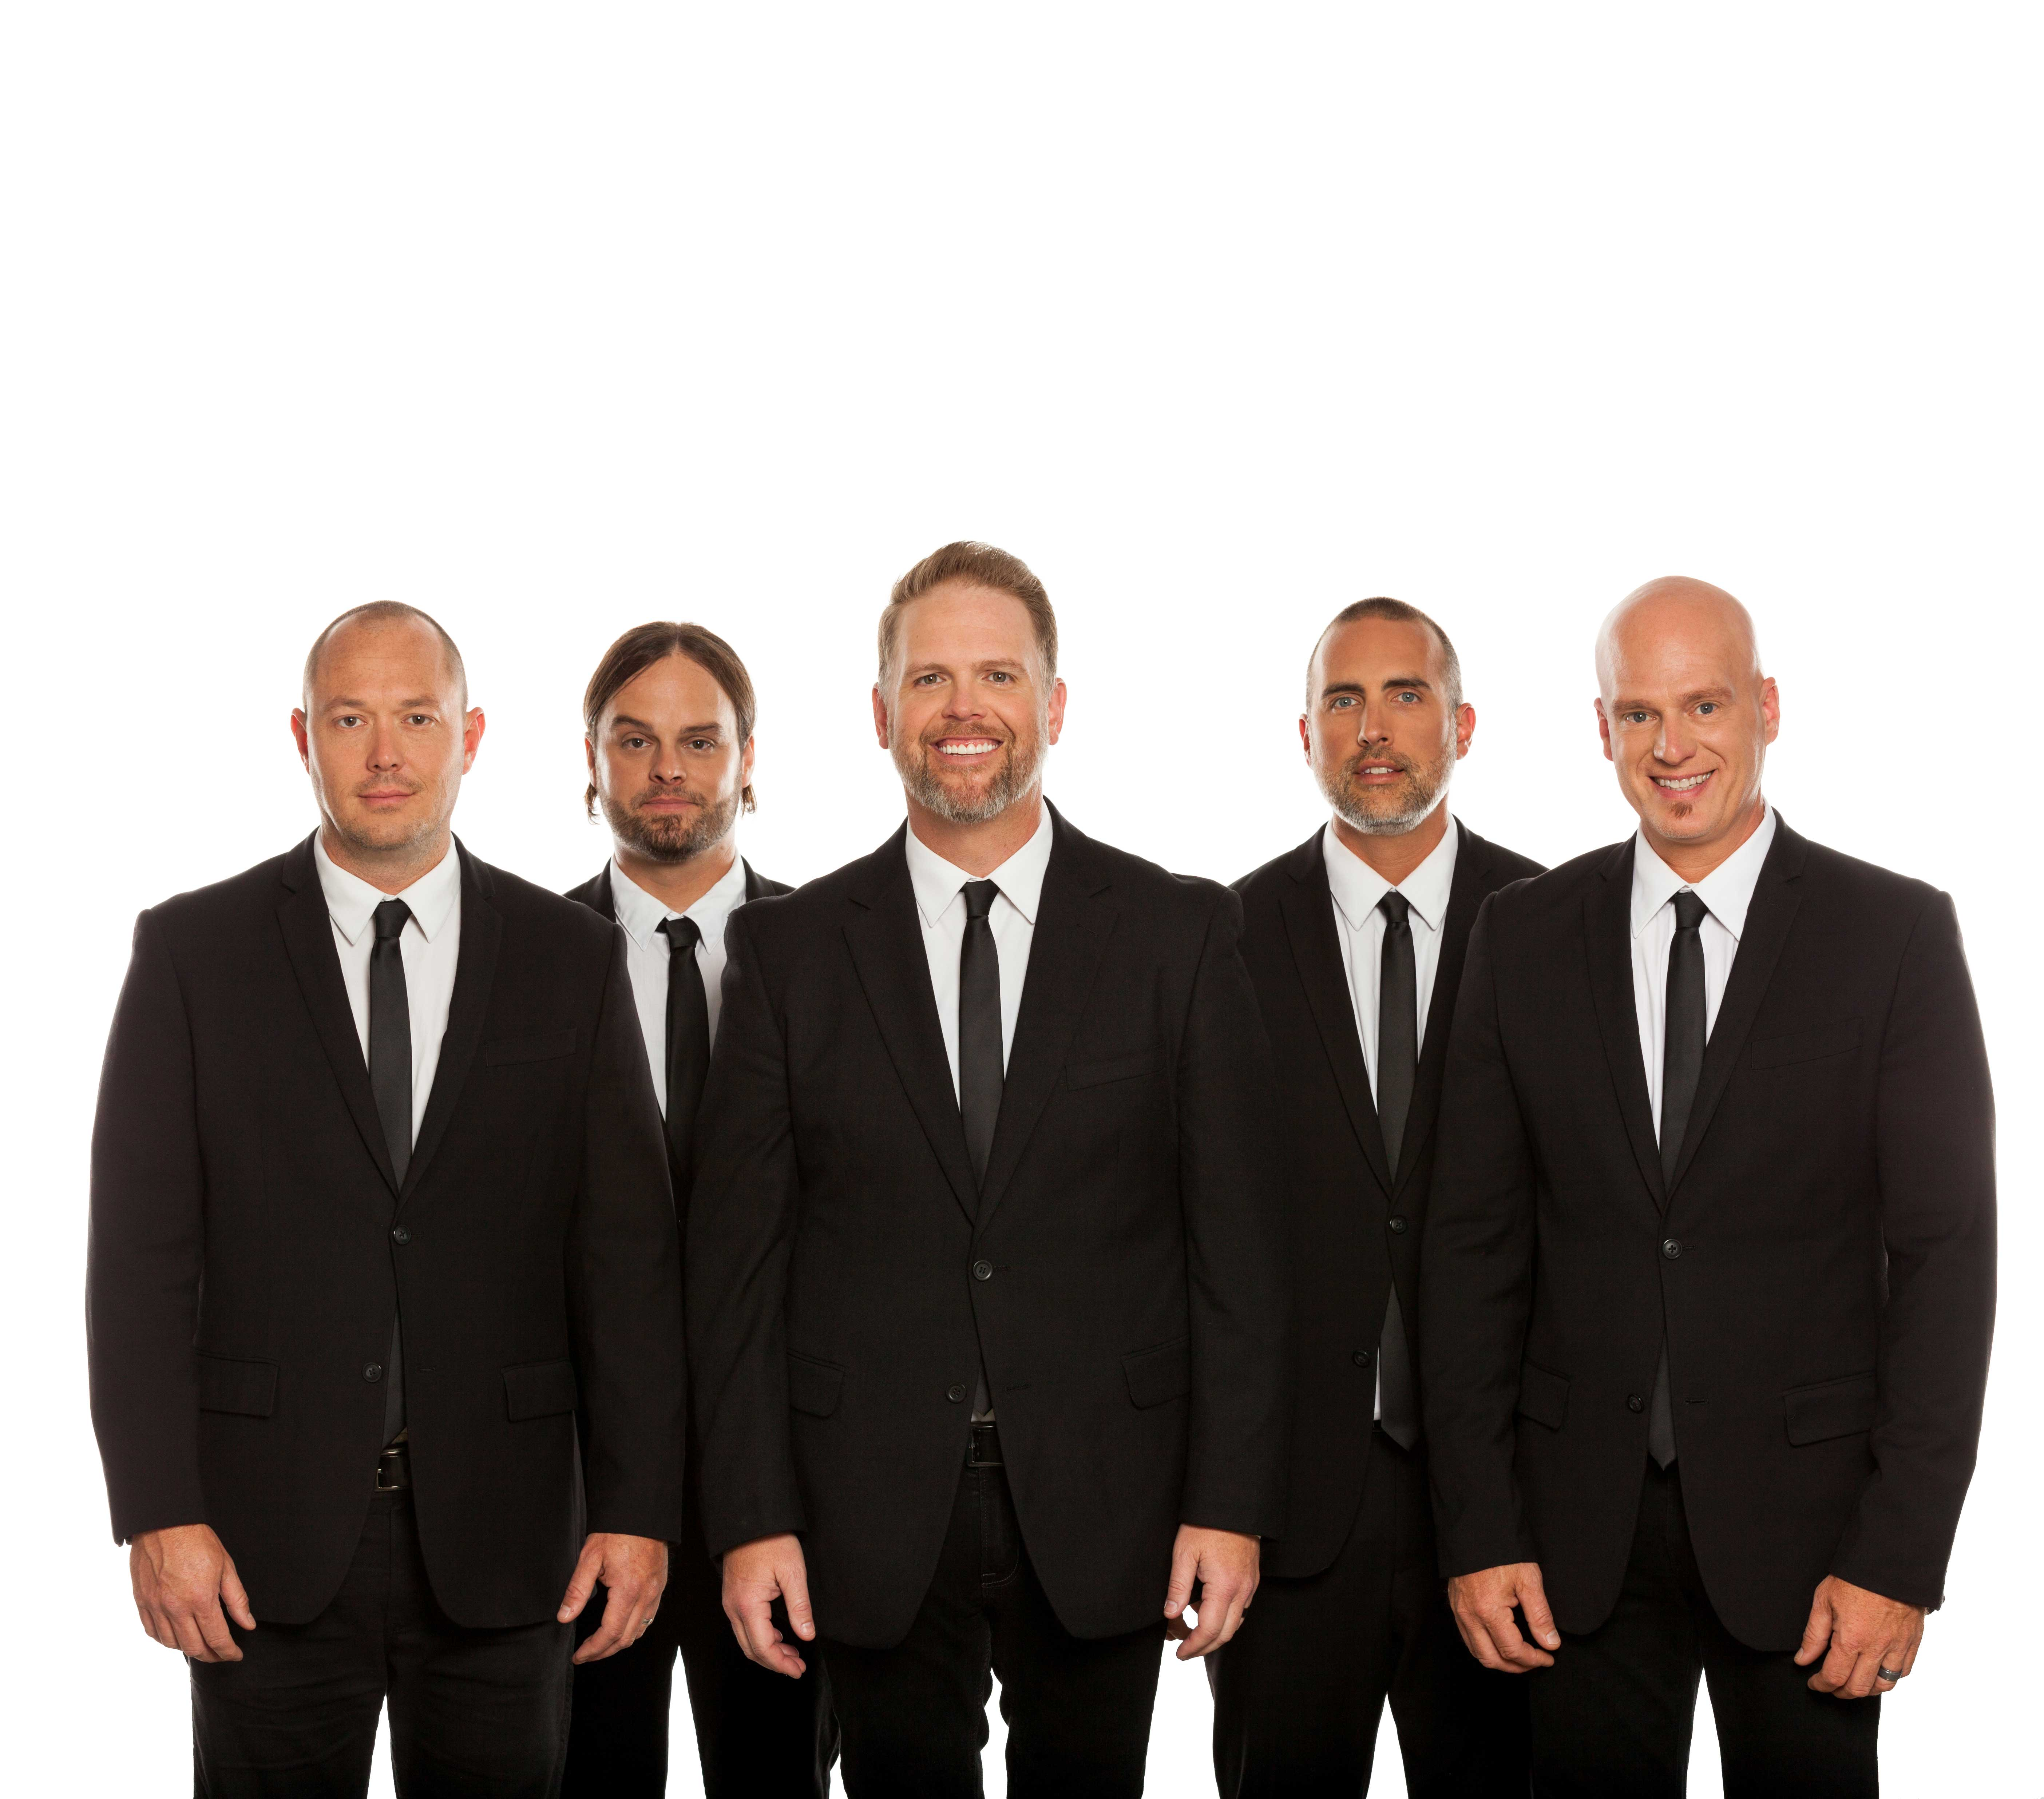 Lifer Mercyme: MercyMe Reveals New Album Title, Cover, And Release Date